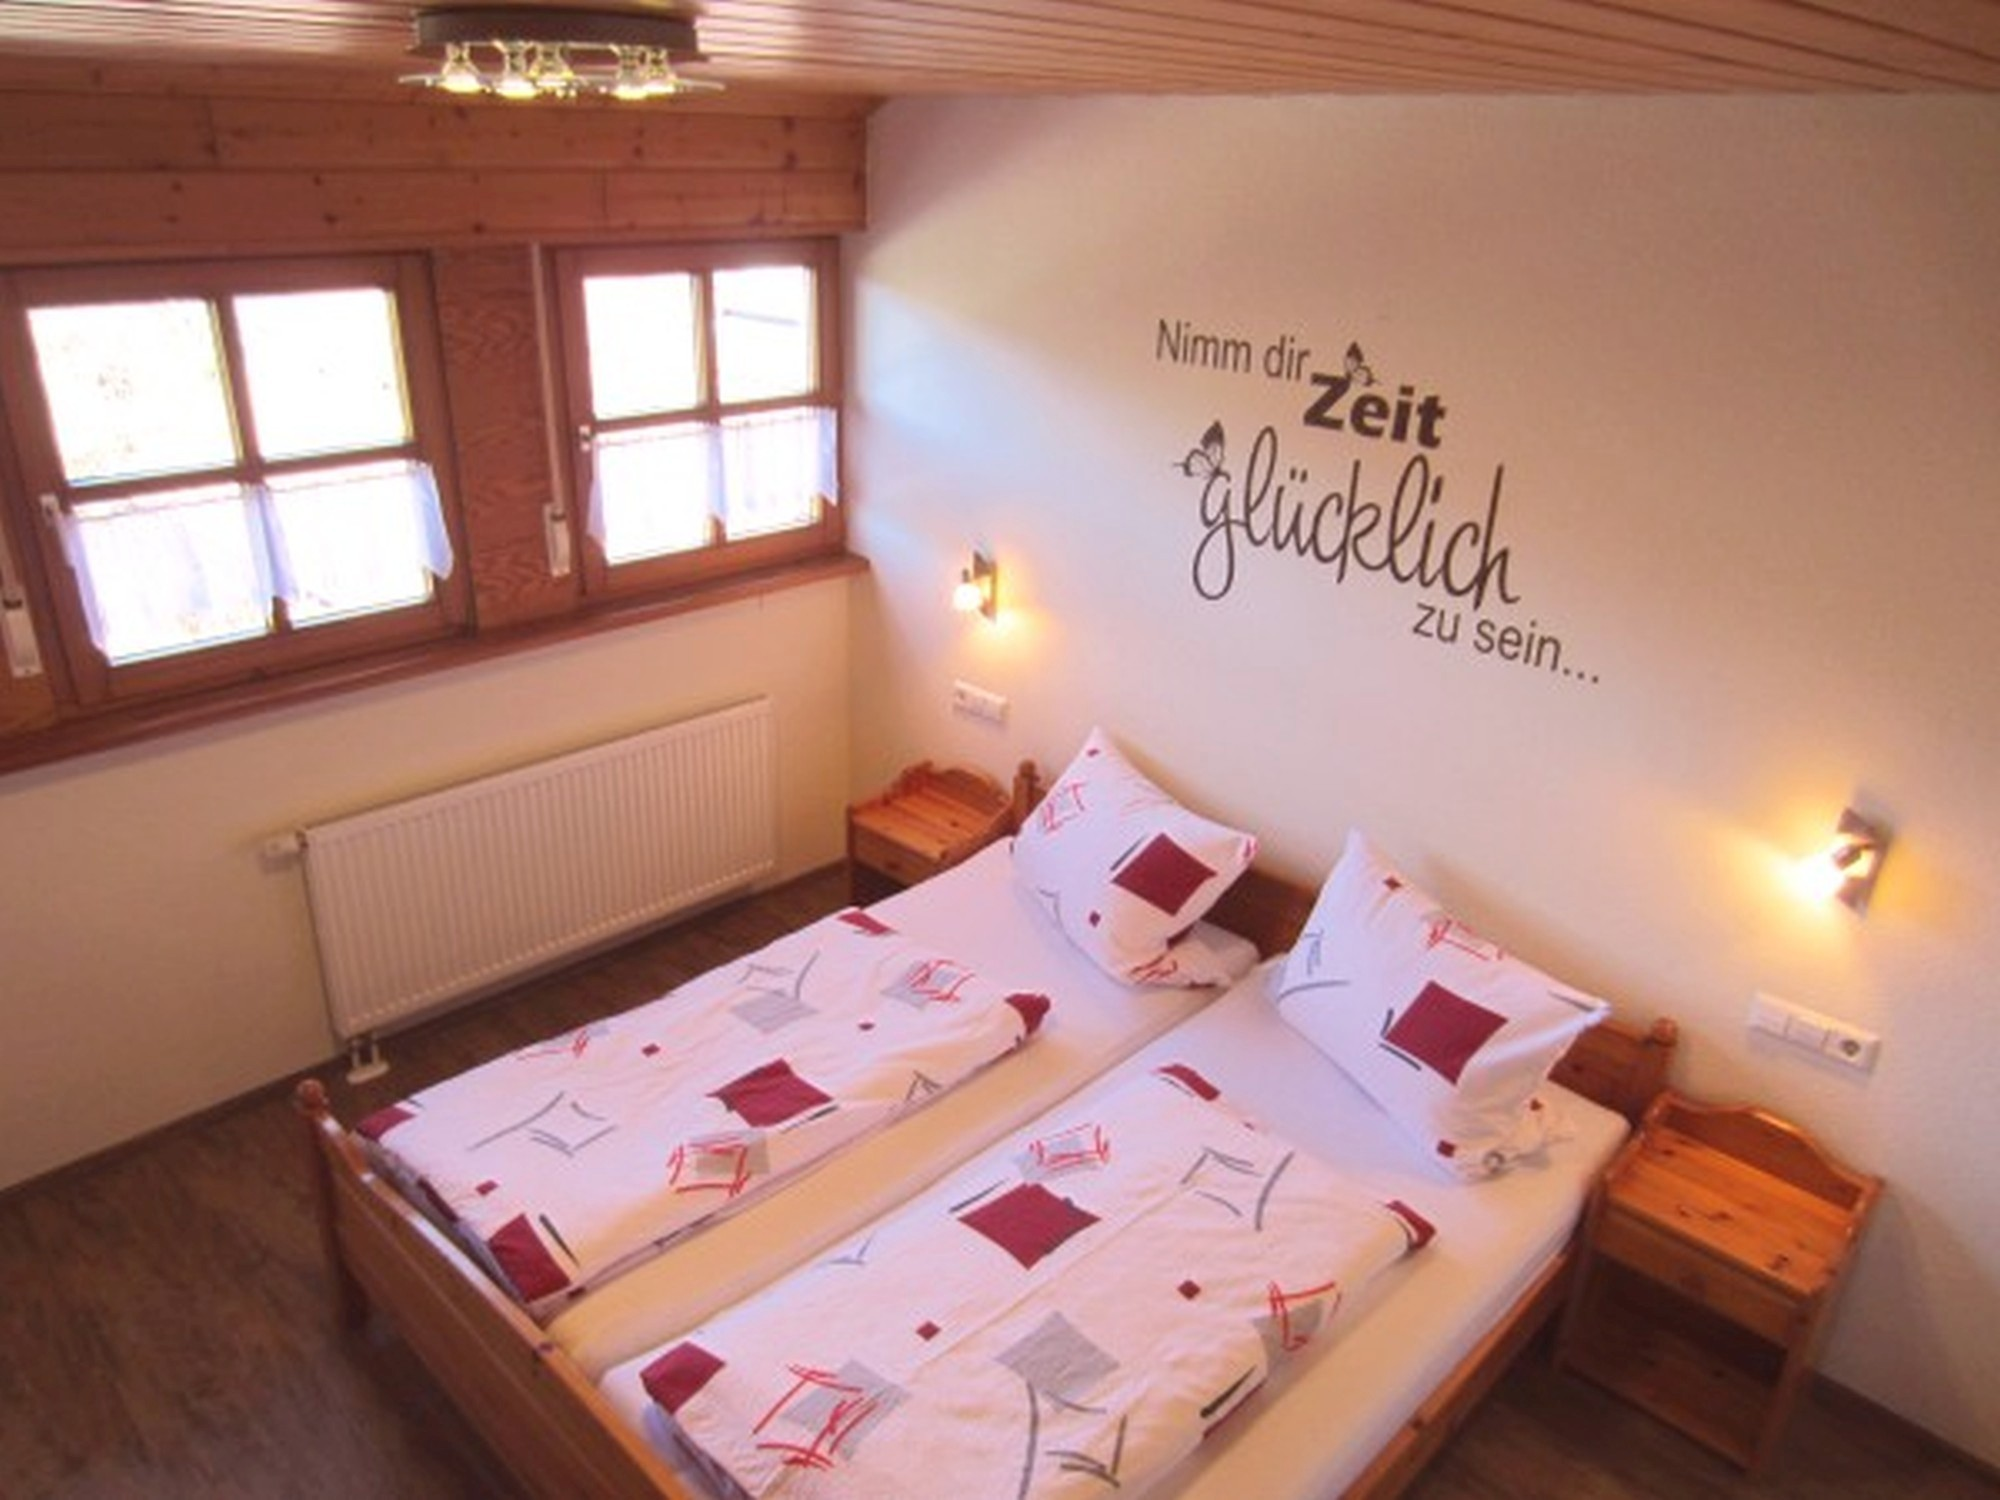 Bedroom vacation home above Balkonblick